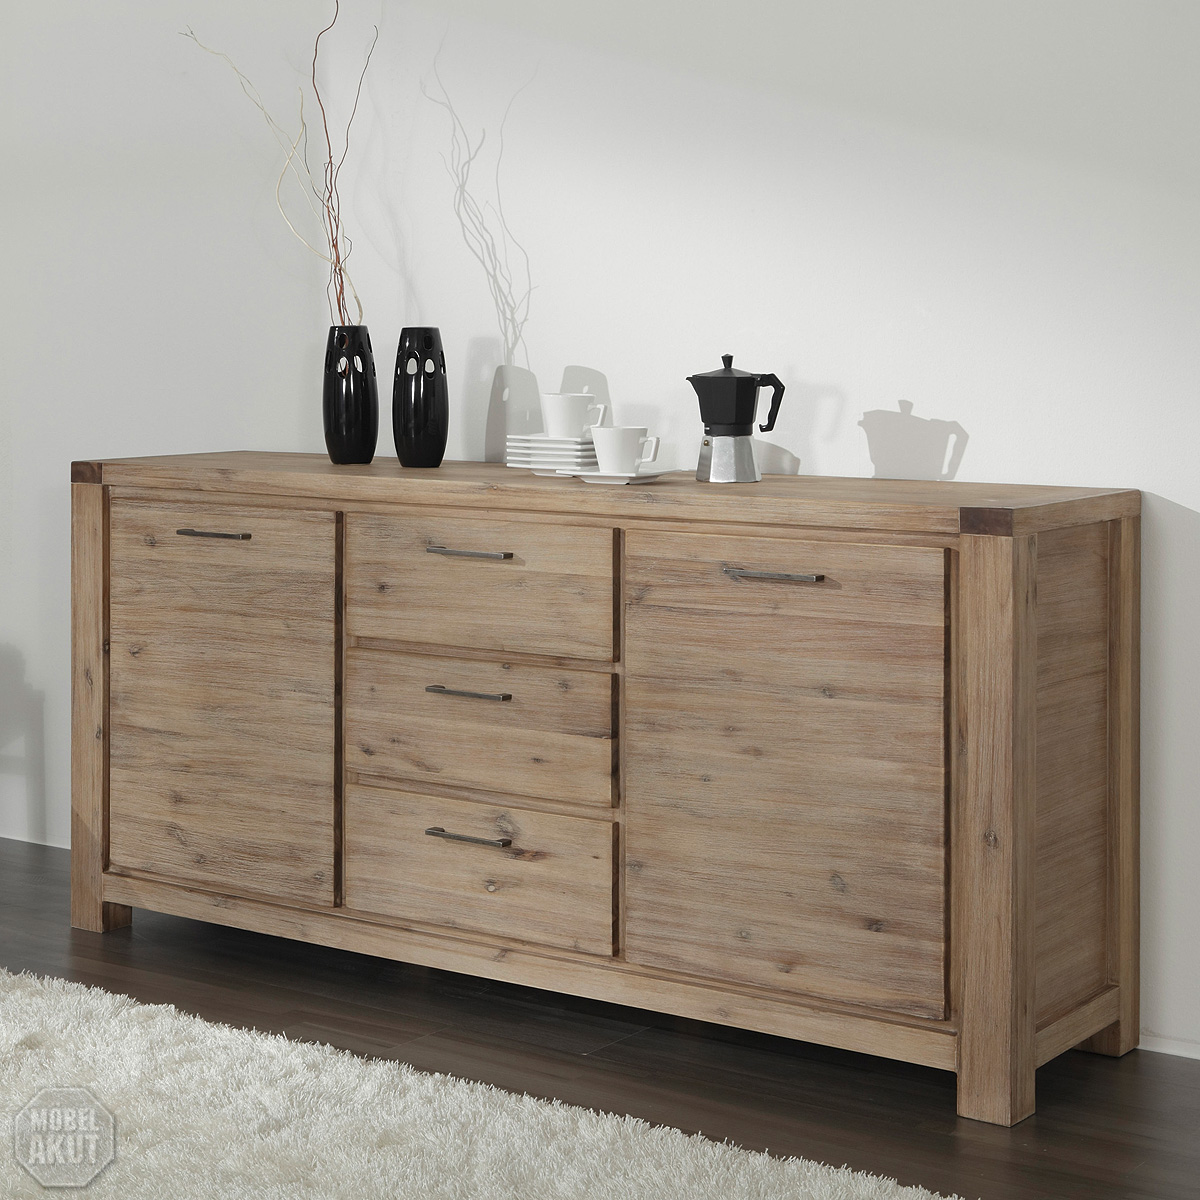 kommode kolonialstil gebraucht innenr ume und m bel ideen. Black Bedroom Furniture Sets. Home Design Ideas